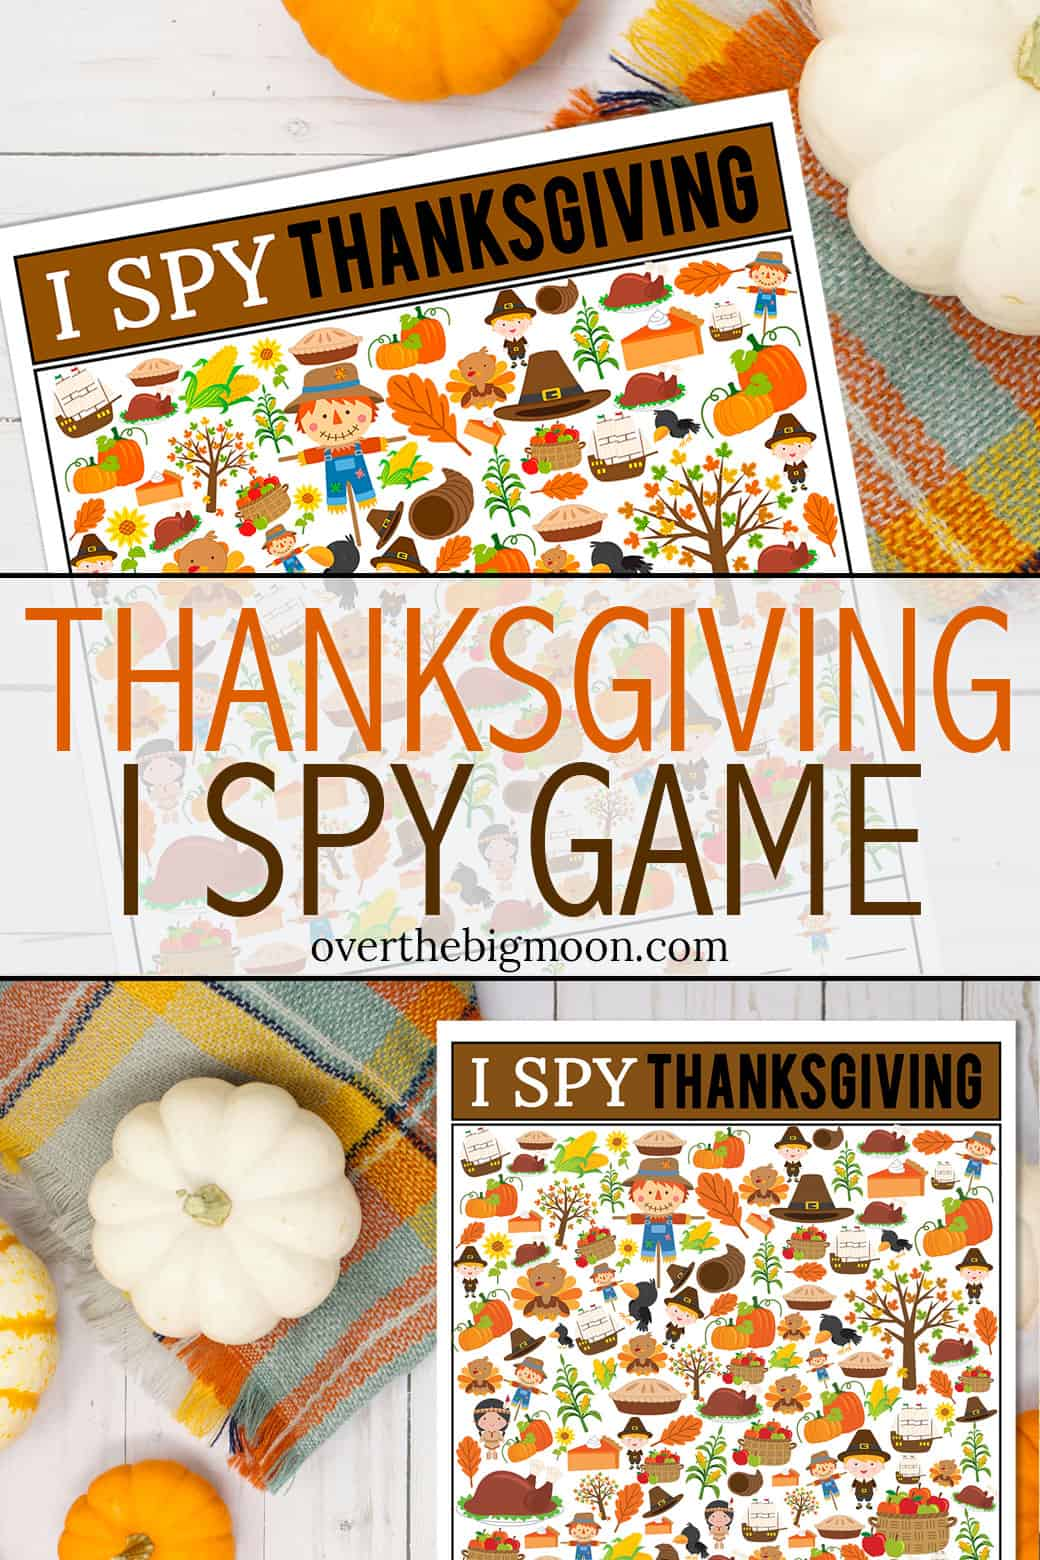 Thanksgiving I Spy Game Printable - the perfect activity for kids during the Thanksgiving Holiday! From overthebigmoon.com!